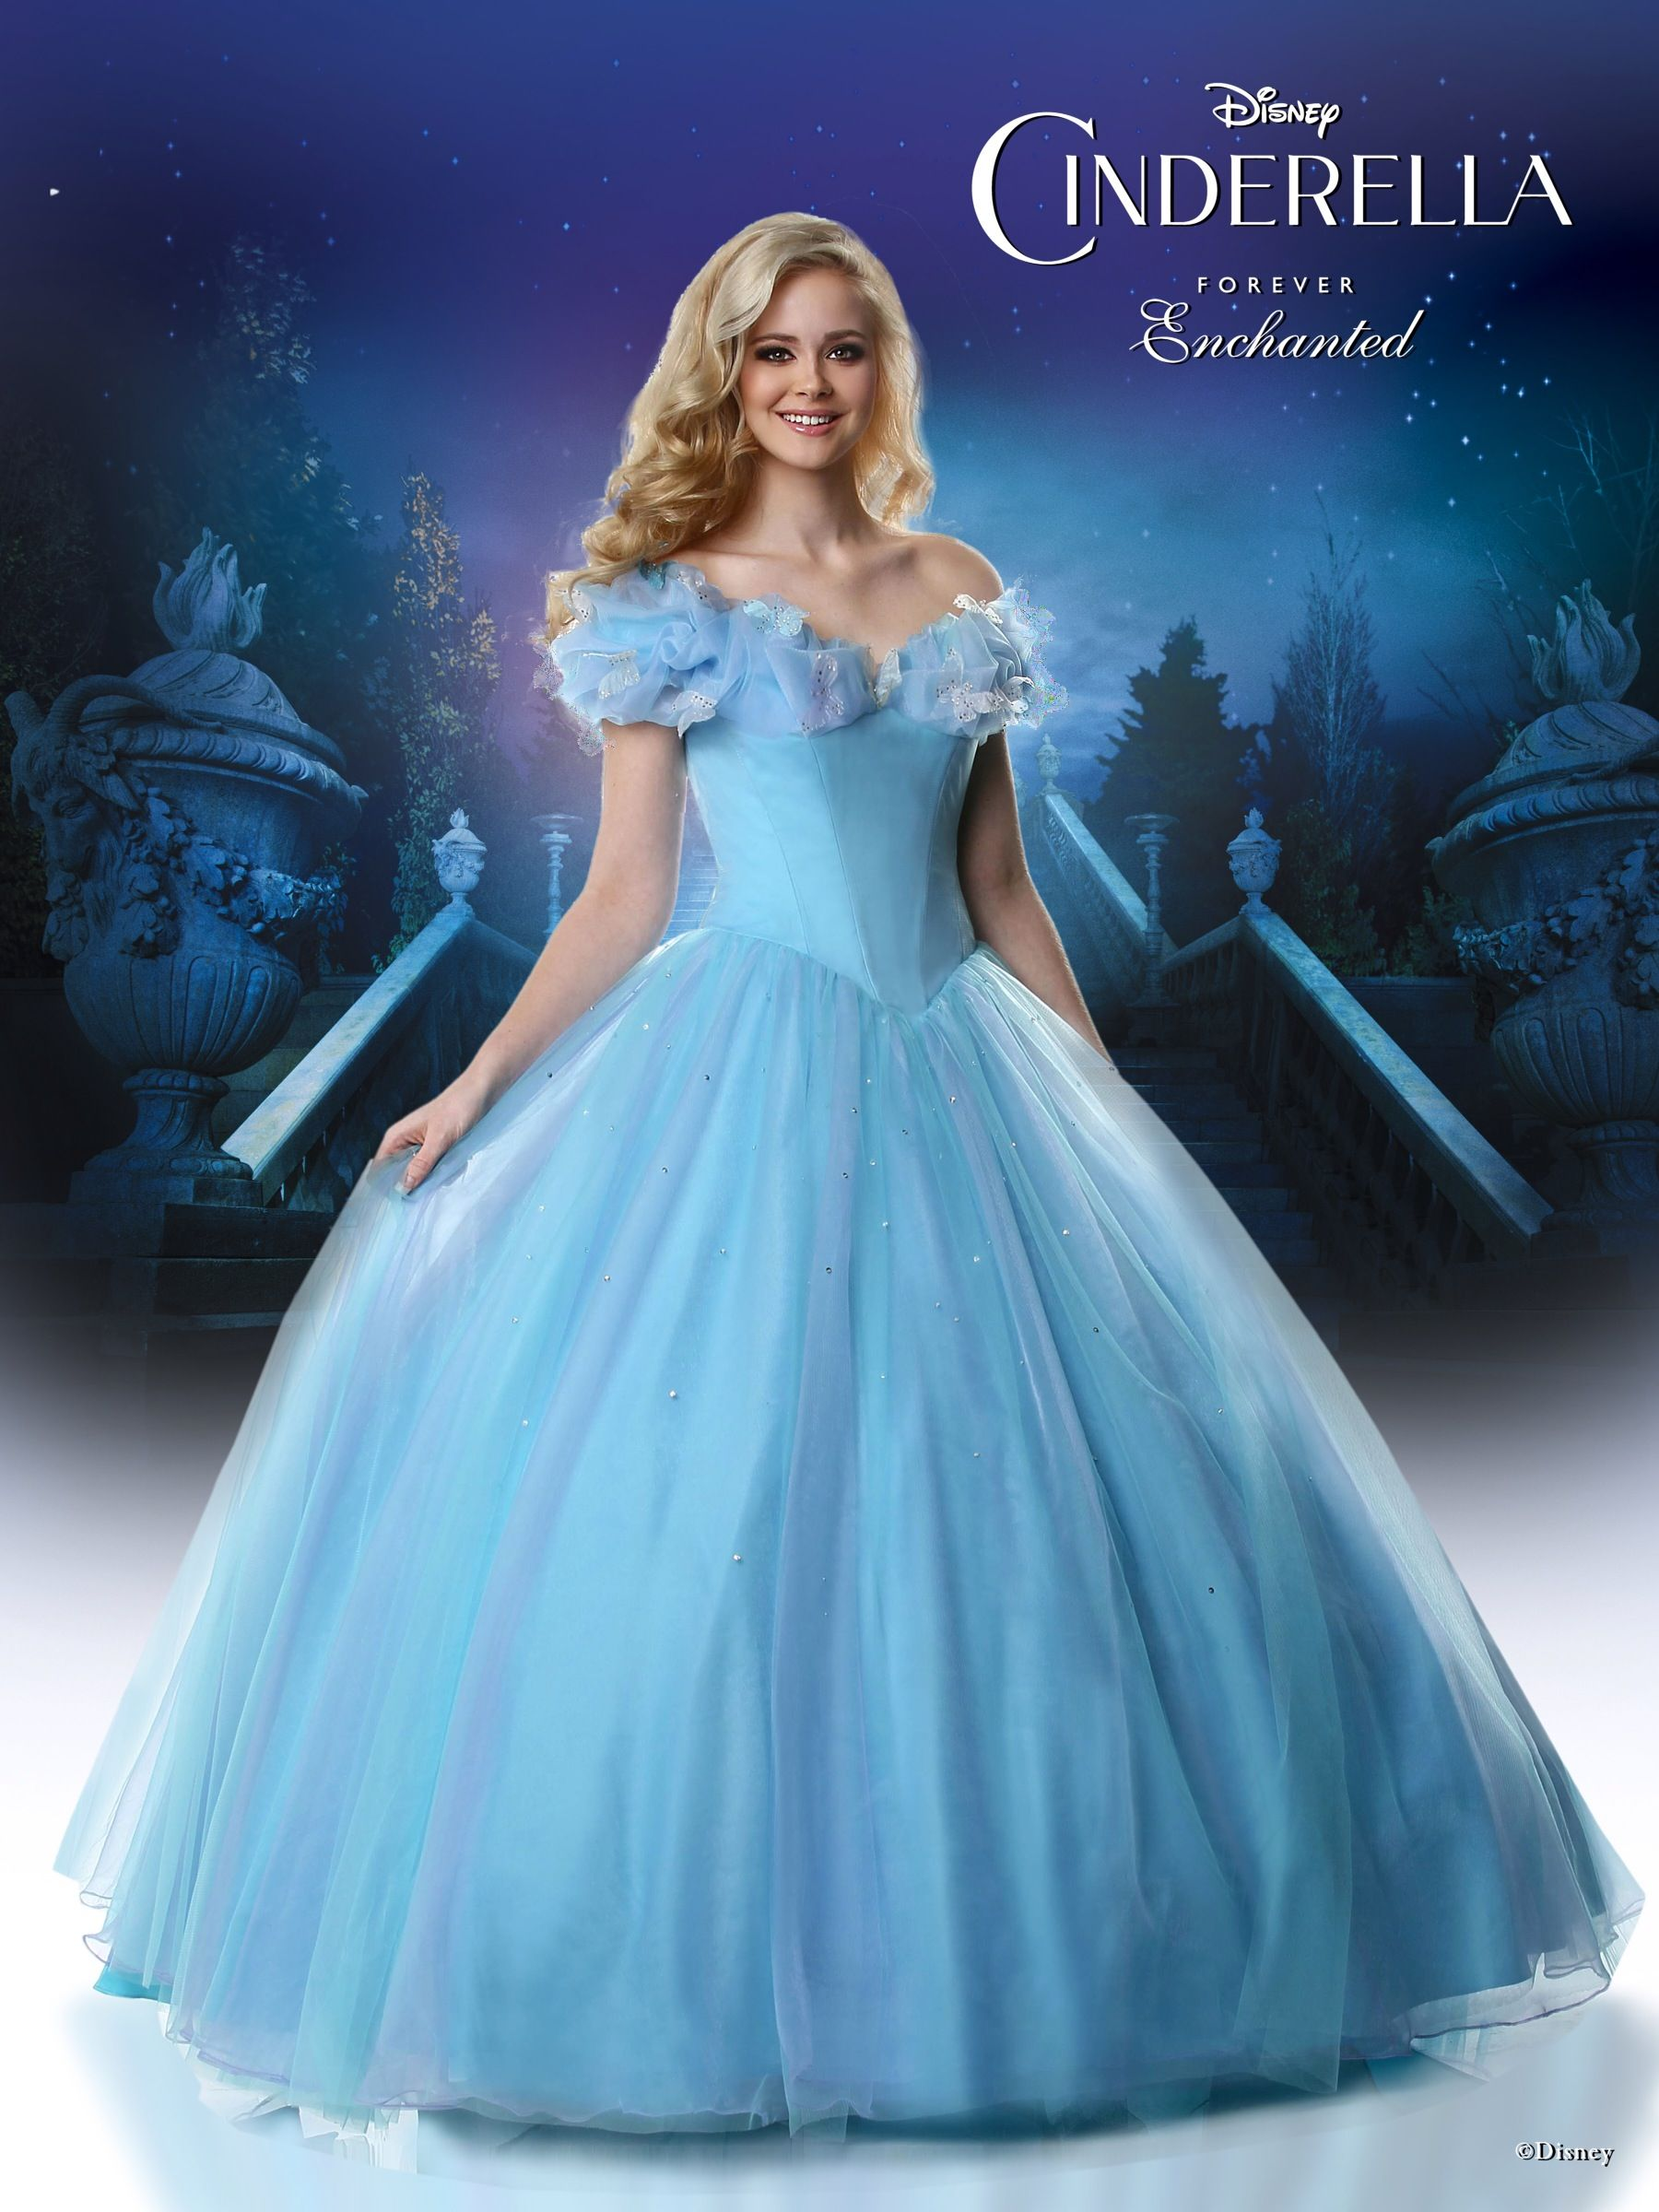 Dress up of cinderella - Disney Forever Enchanted Cinderella Prom Dress Collection By Ashdon For 2015